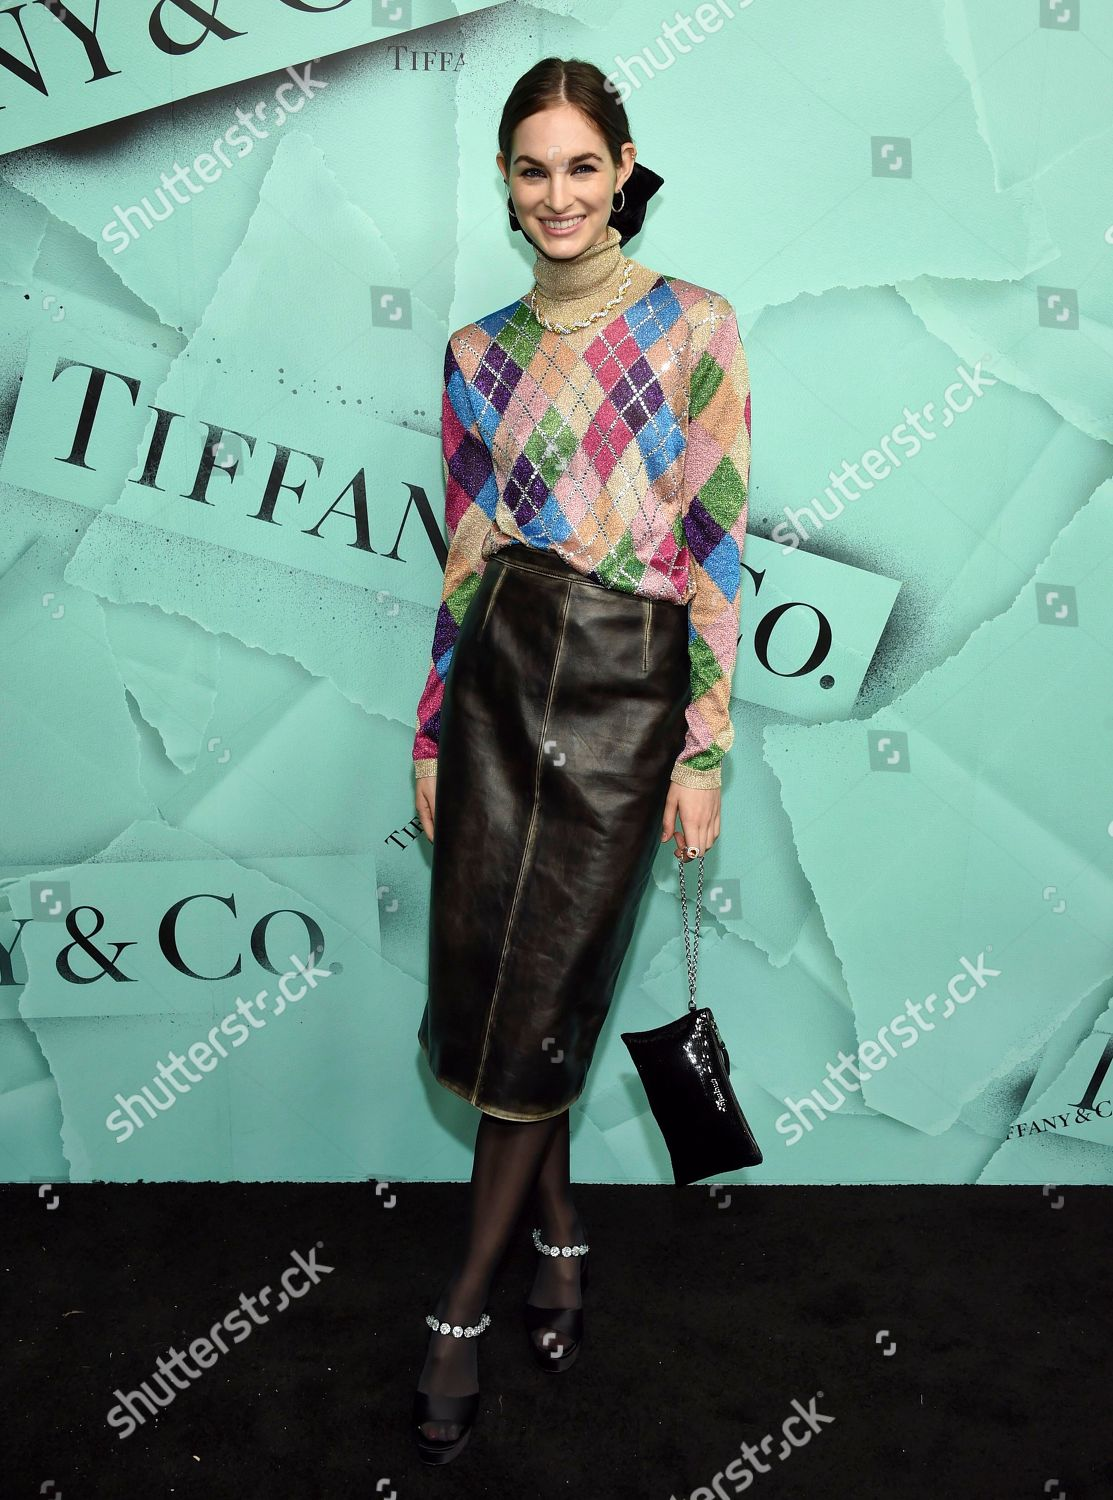 fe98ad31a258 Stock photo of Tiffany and Co. 2018 Blue Book Collection Celebration